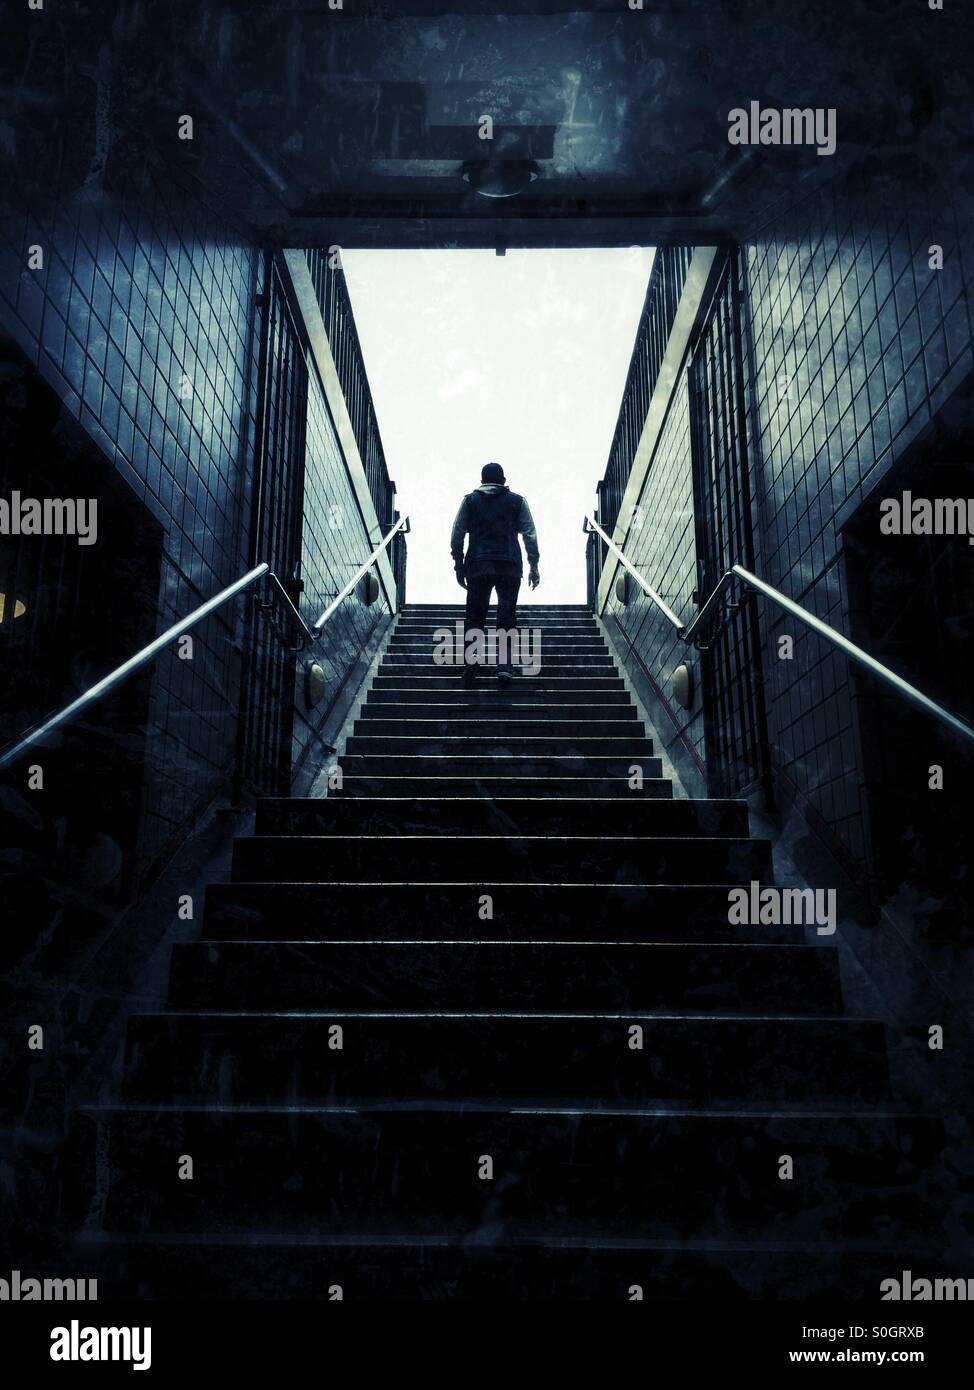 Man walking up the stairs - Stock Image